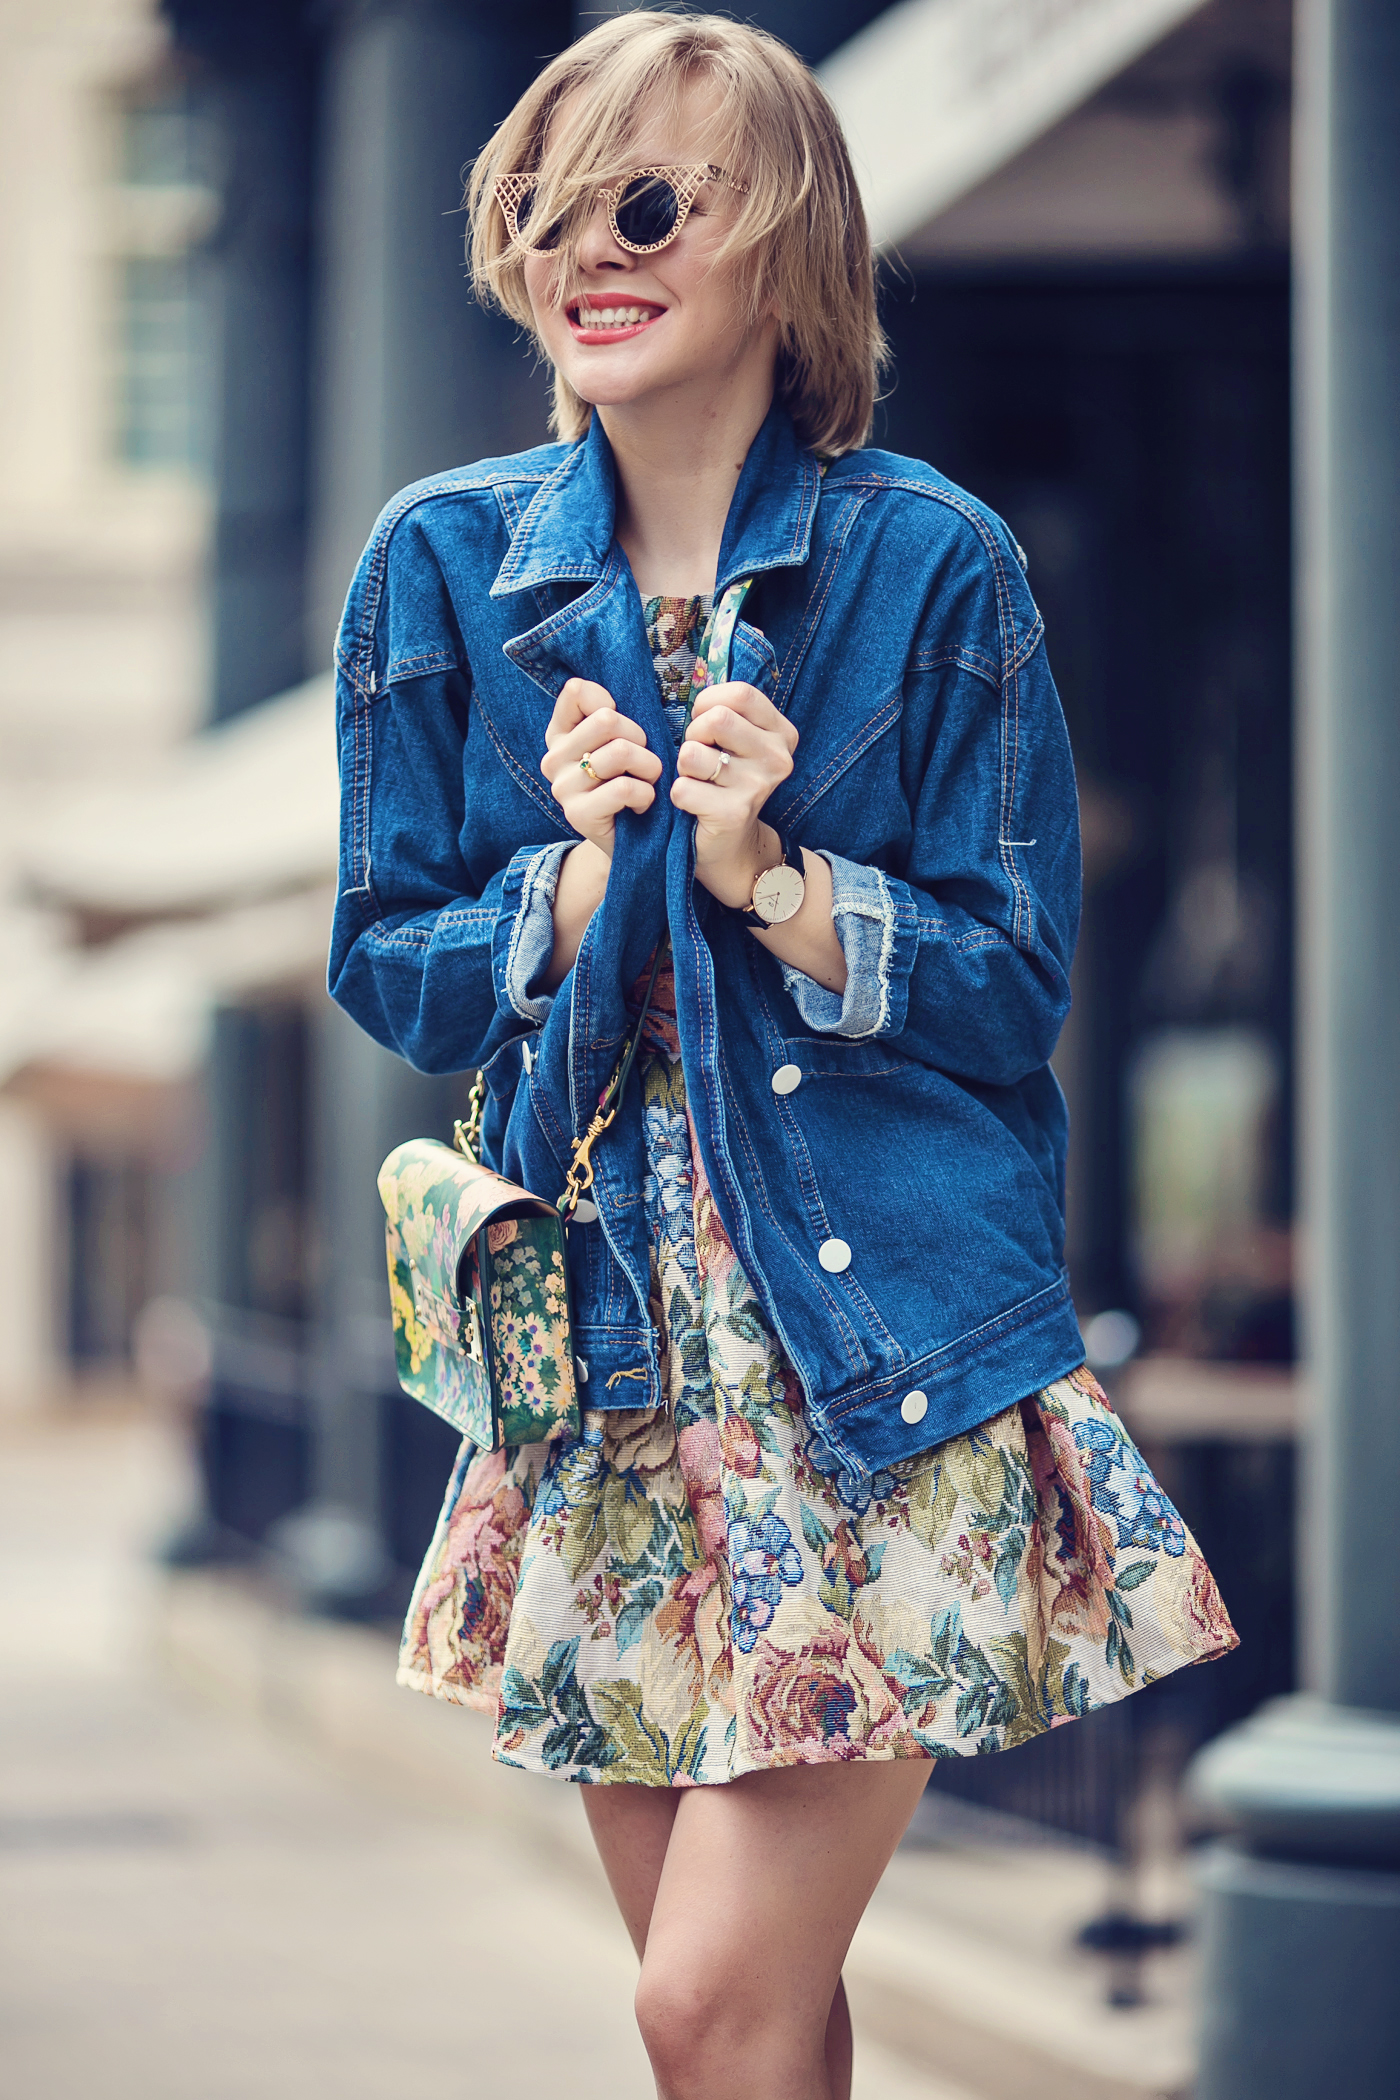 darya kamalova a fashion blogger from thecablook is wearing chicwish dress with denim boyfriend jacket and gold espadrilles with sophie hulme flower bag-39